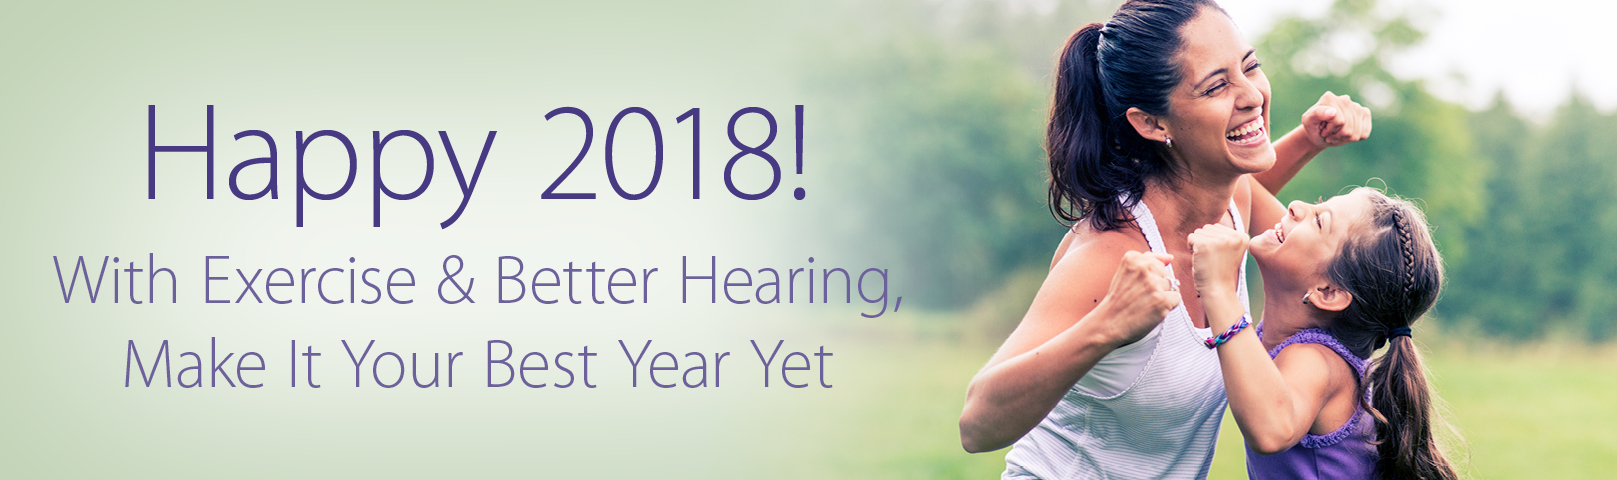 Happy 2018! With Exercise & Better Hearing, Make It Your Best Year Yet